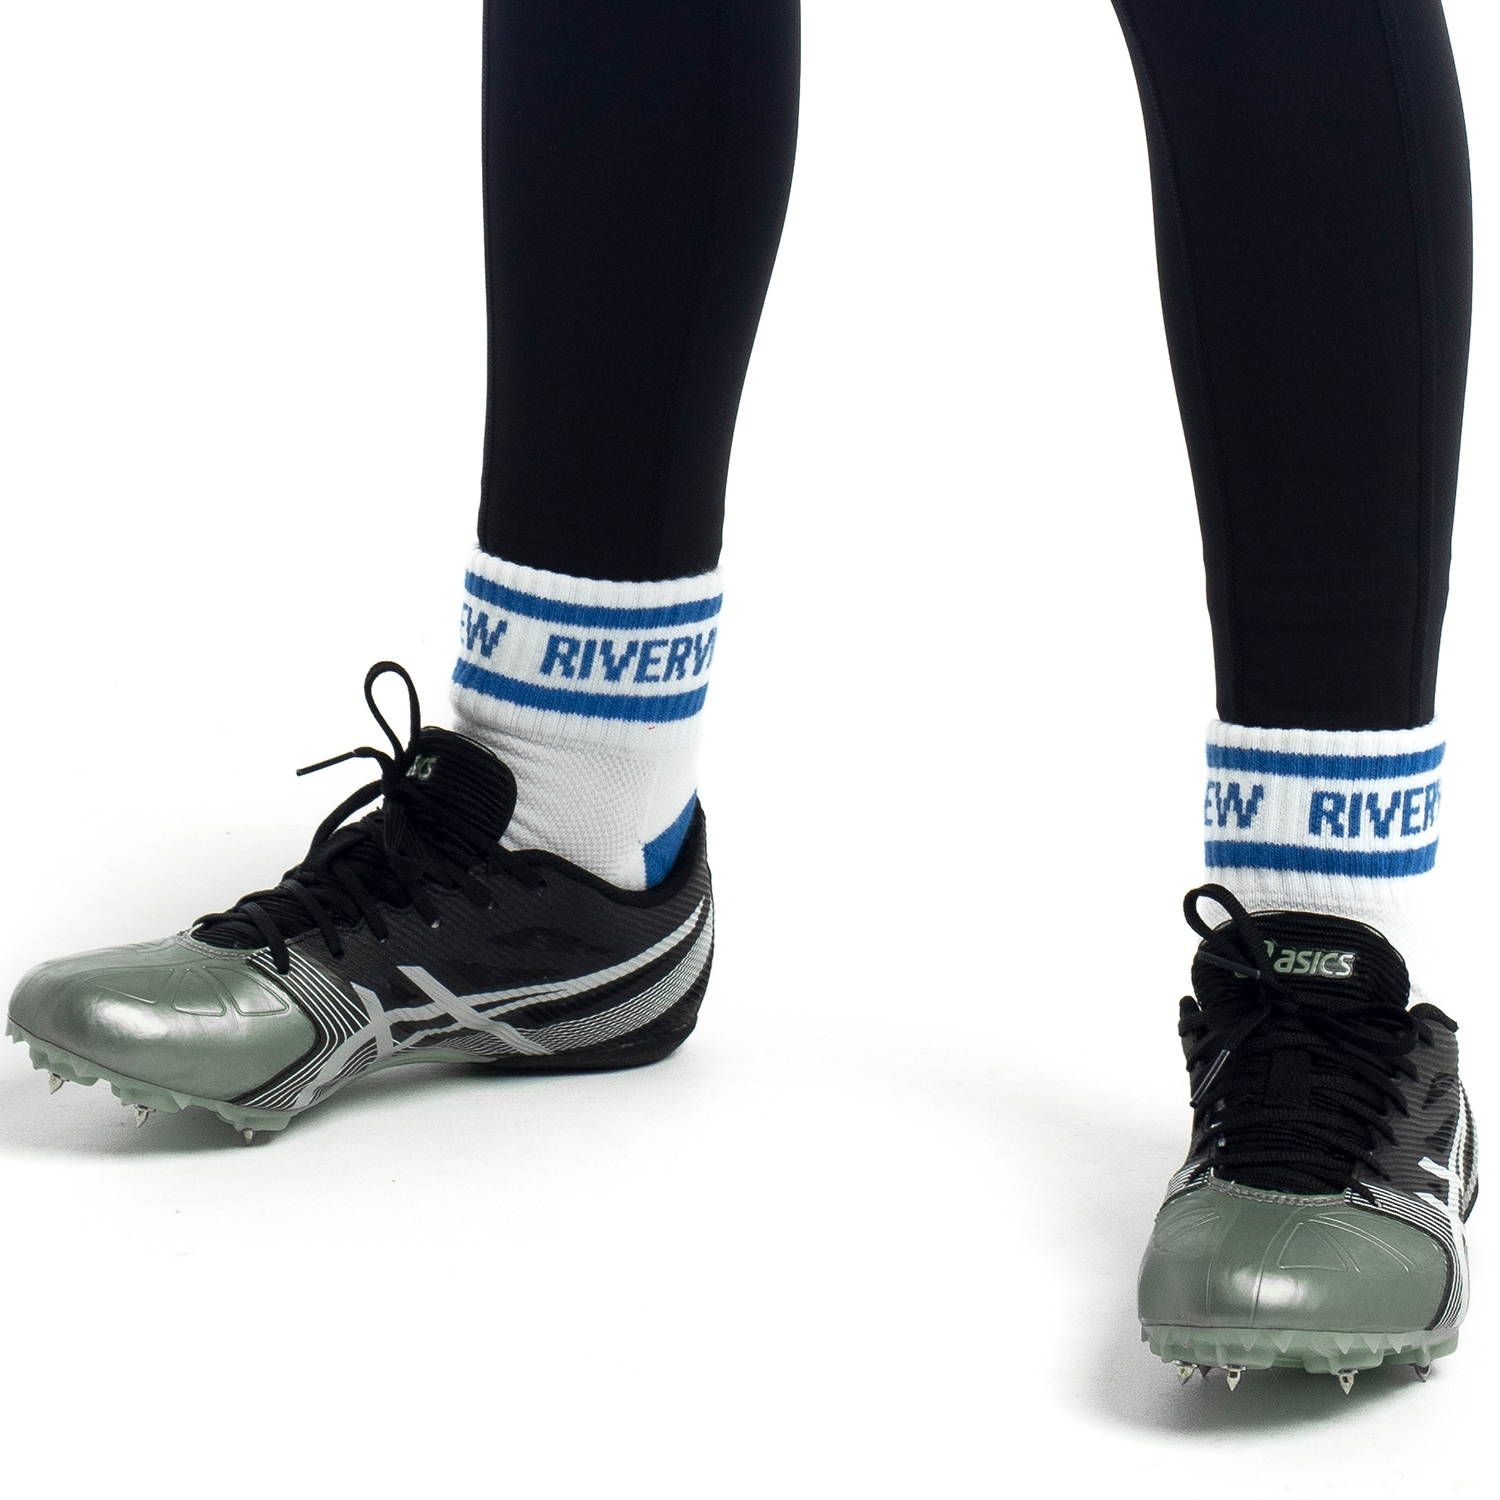 Custom Quarter Sock for St Ignatius Riverview by Valour Sport